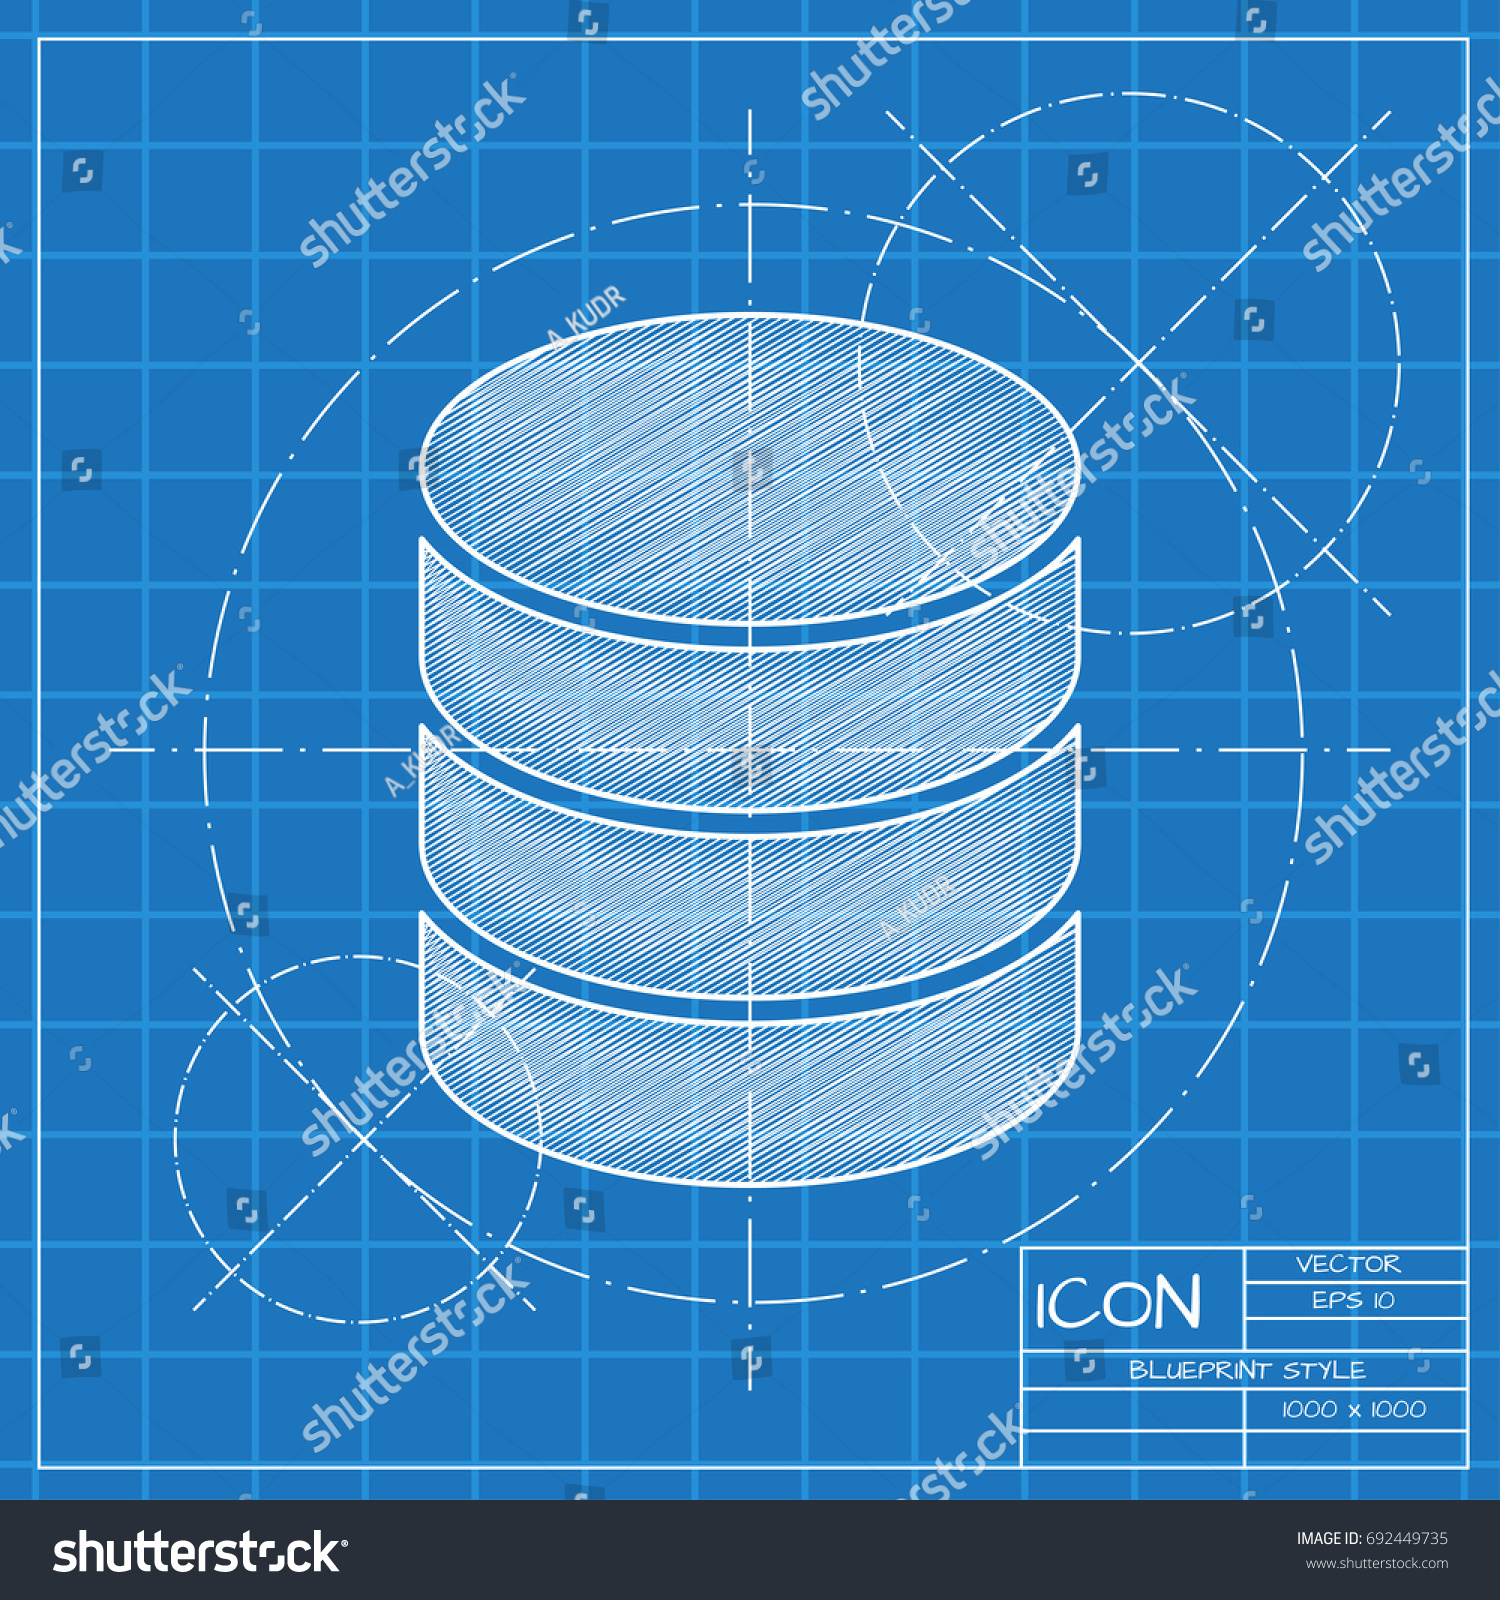 Fantastic blueprint database contemporary electrical and wiring vector blueprint database icon on engineer stock vector 692449735 malvernweather Gallery